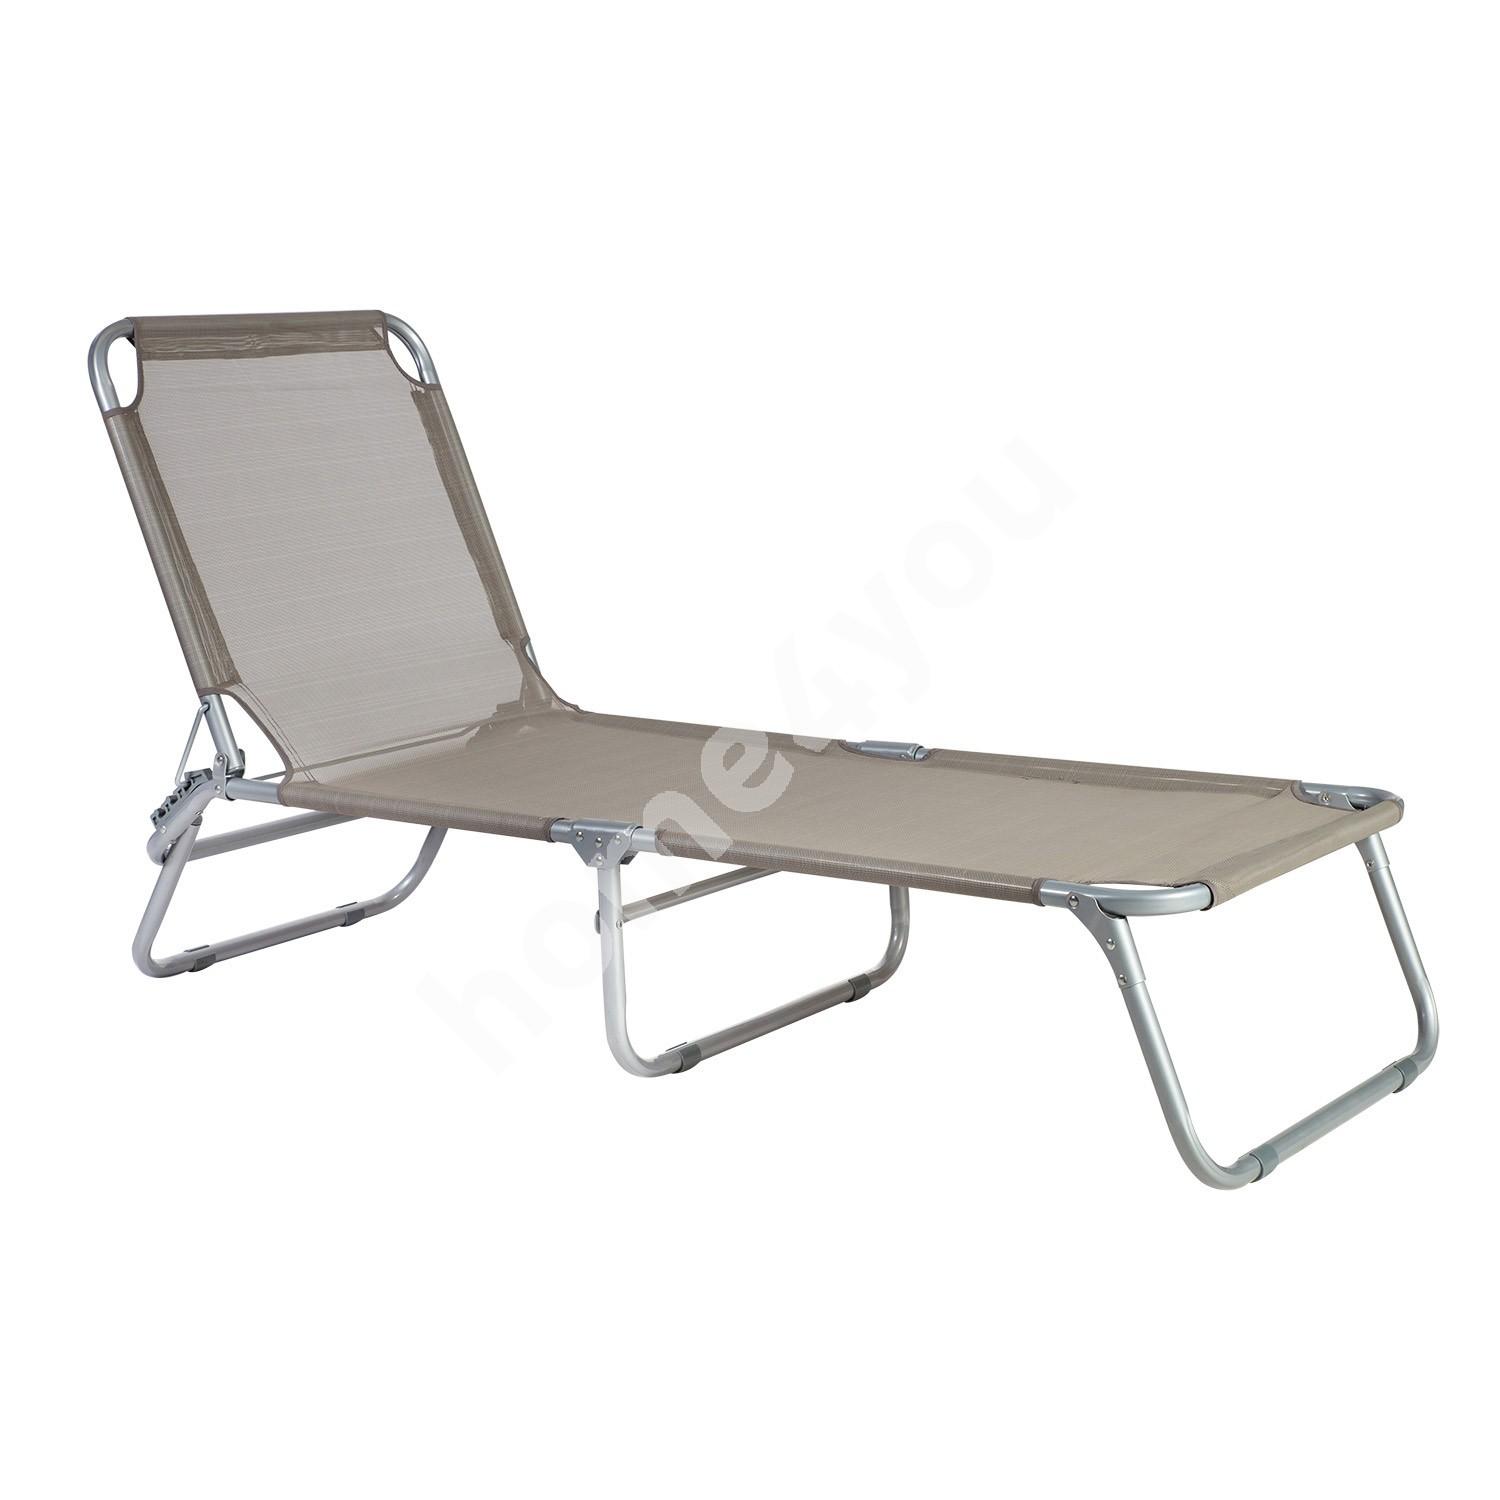 Lounge TRIP 191x57xH28cm, bed: textiline, color: taupe, steel frame: color: silver